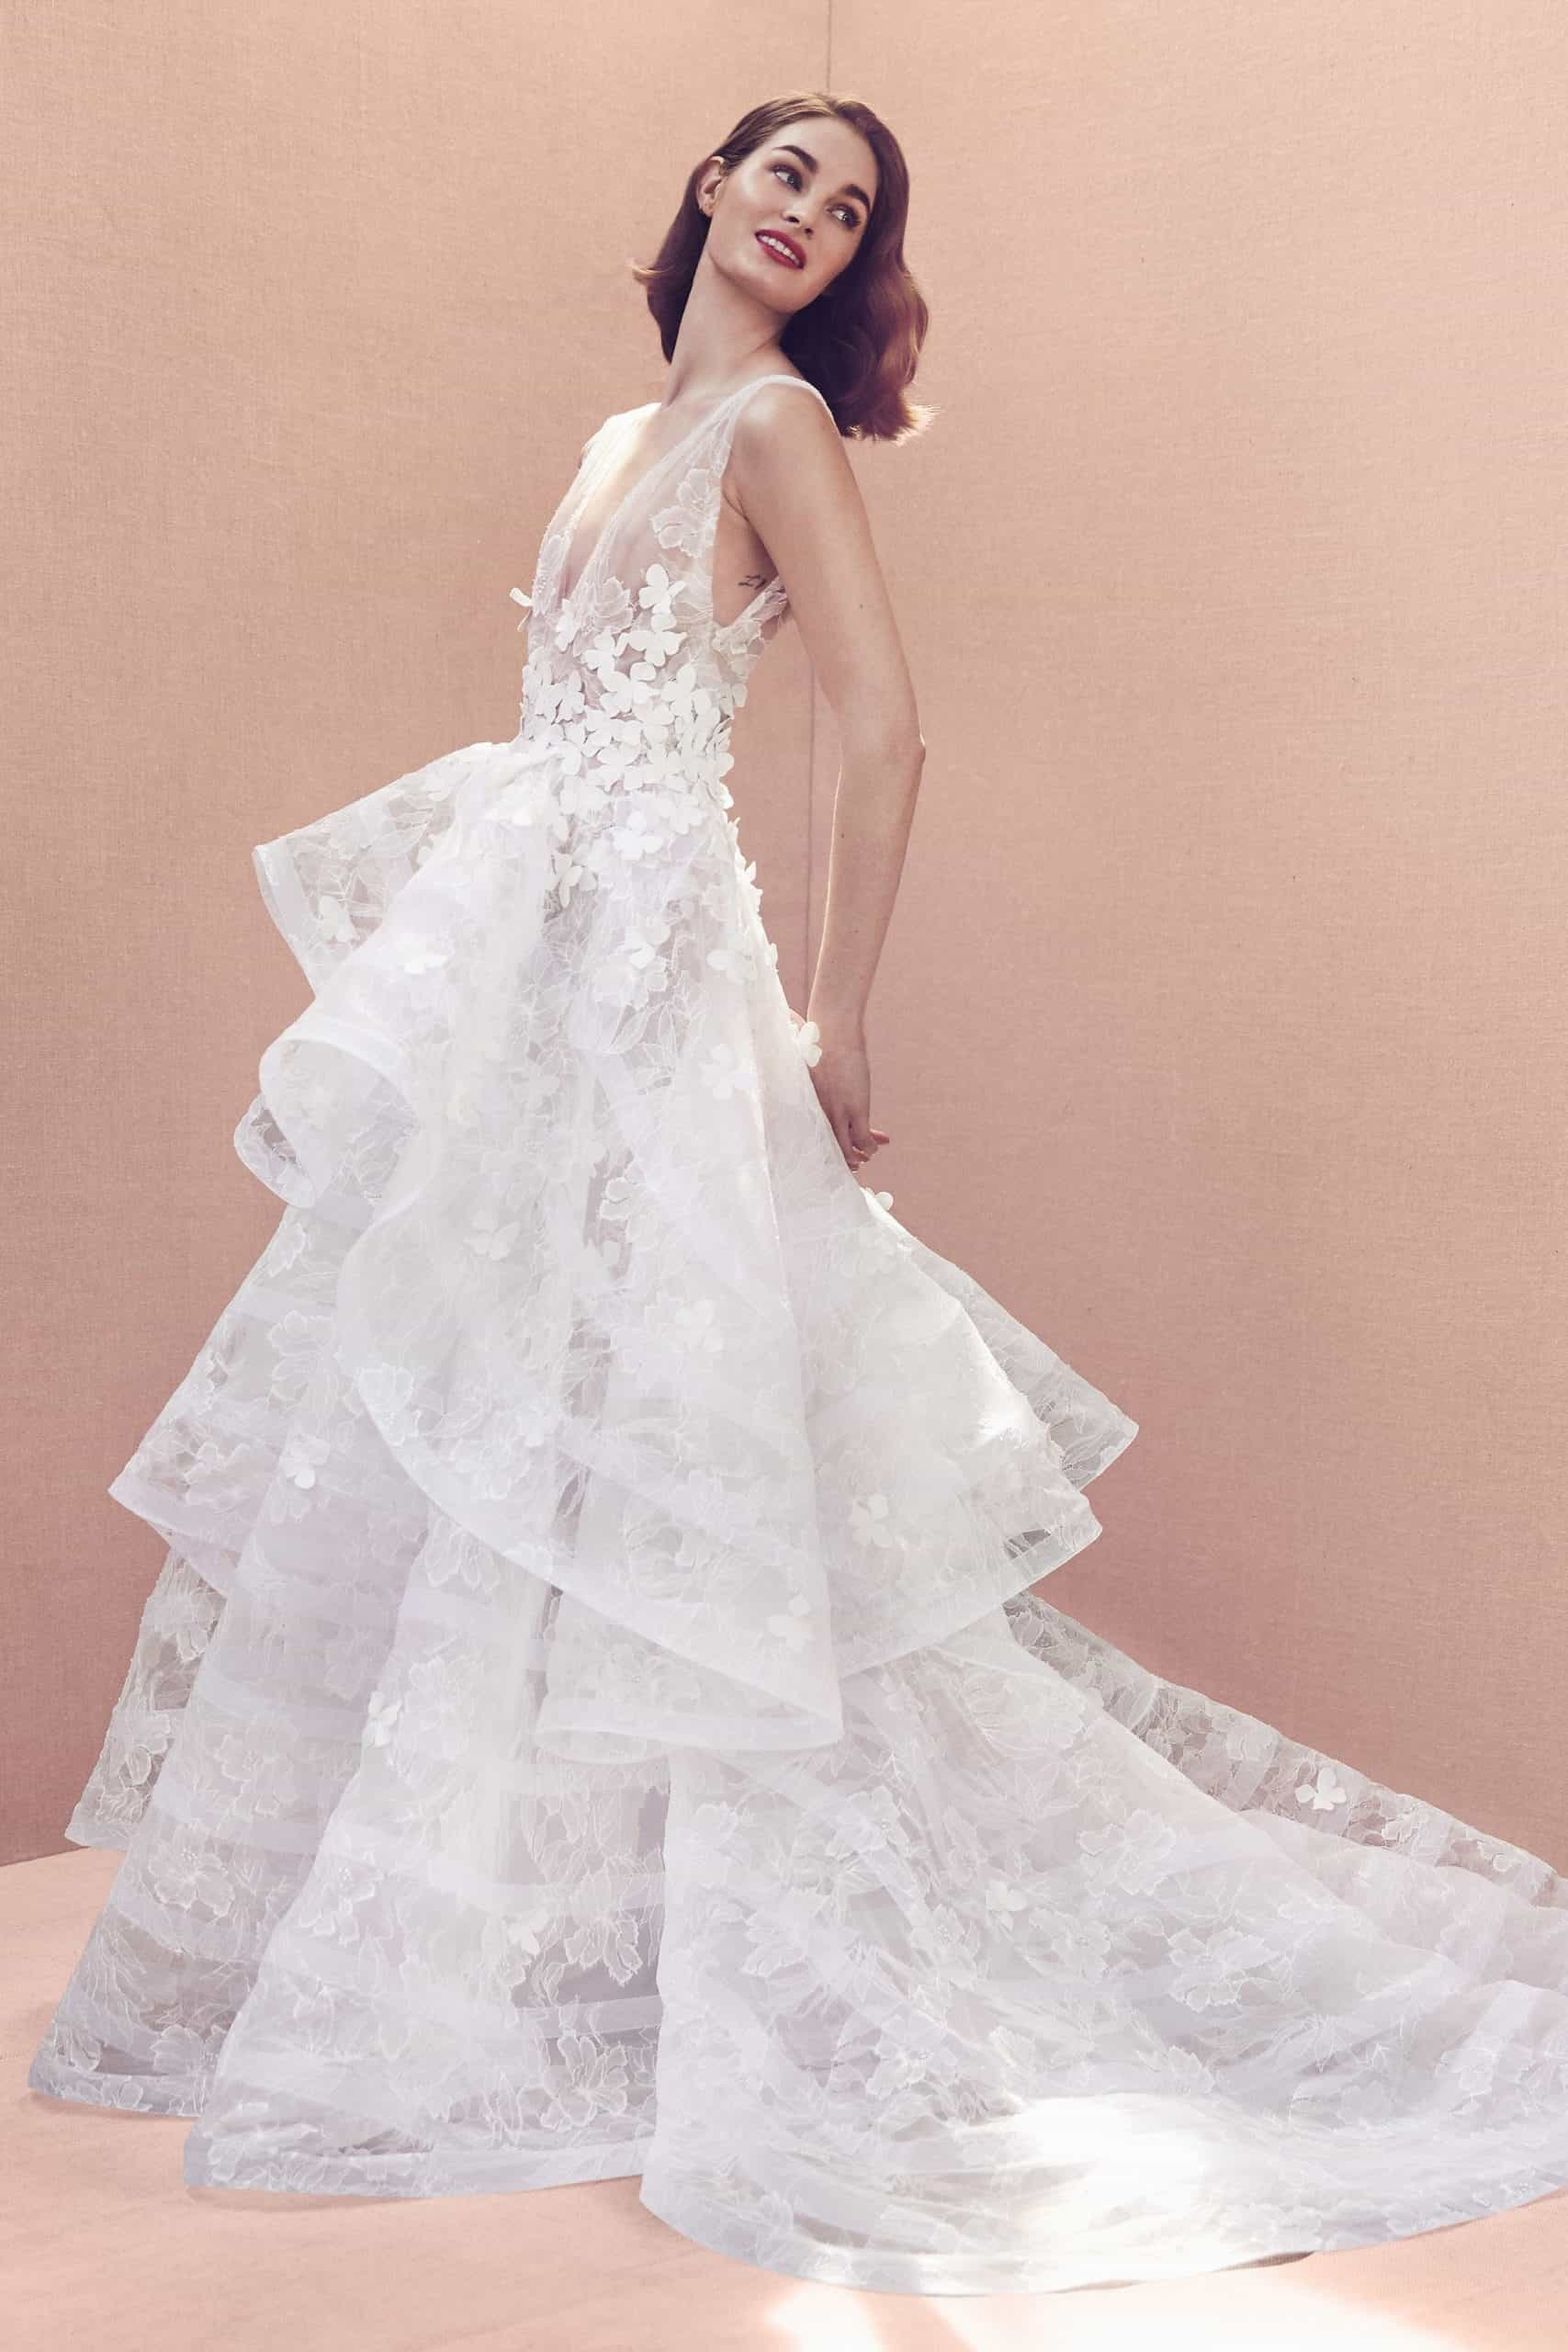 laced wedding dress with a layering skirt and tail by Oscar de la Renta